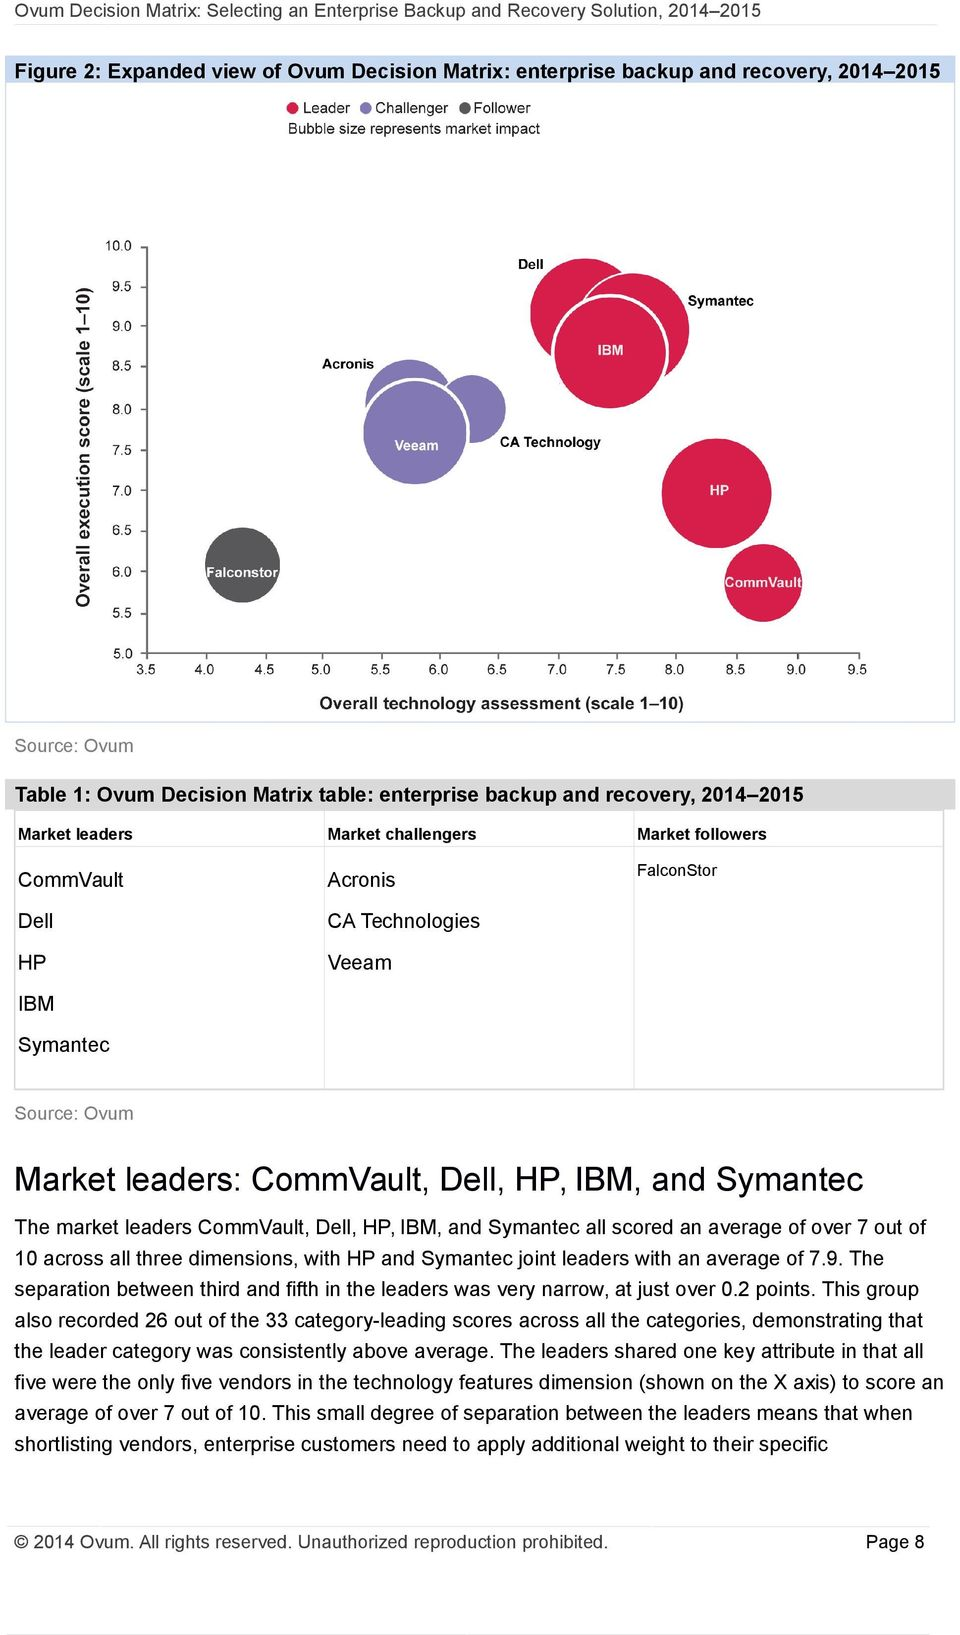 CommVault, Dell, HP, IBM, and Symantec all scored an average of over 7 out of 10 across all three dimensions, with HP and Symantec joint leaders with an average of 7.9.